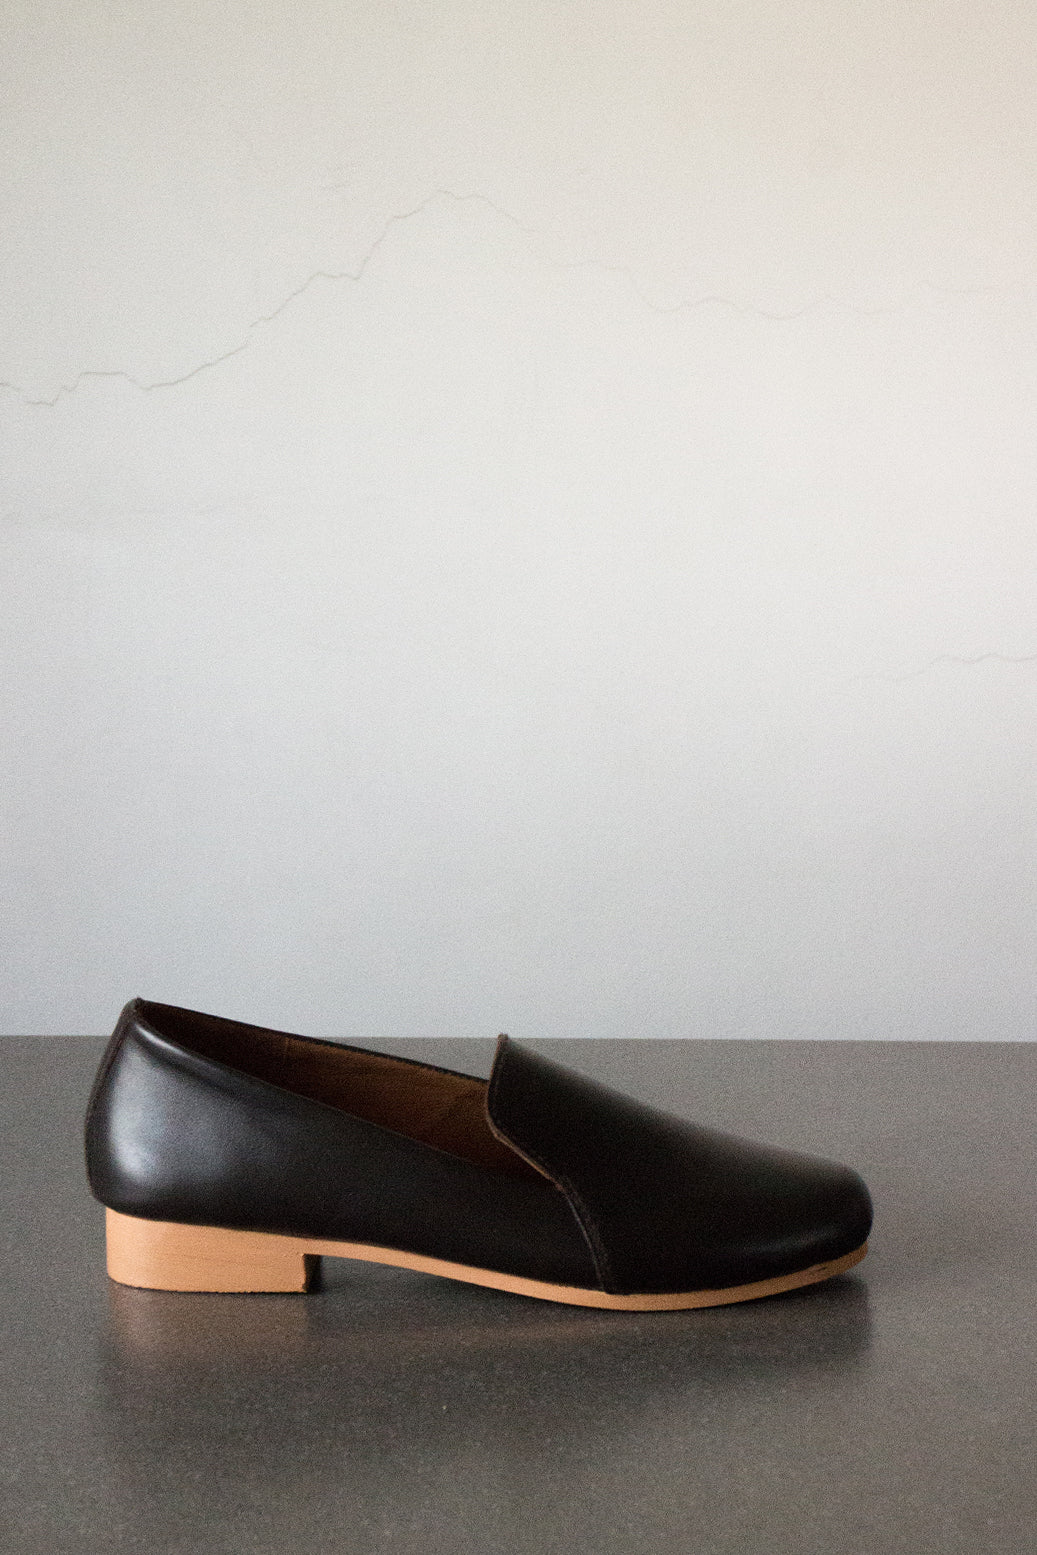 The Smoking Loafer in Dark Brown - andanté, loafers - loafers, loafers leather footwear